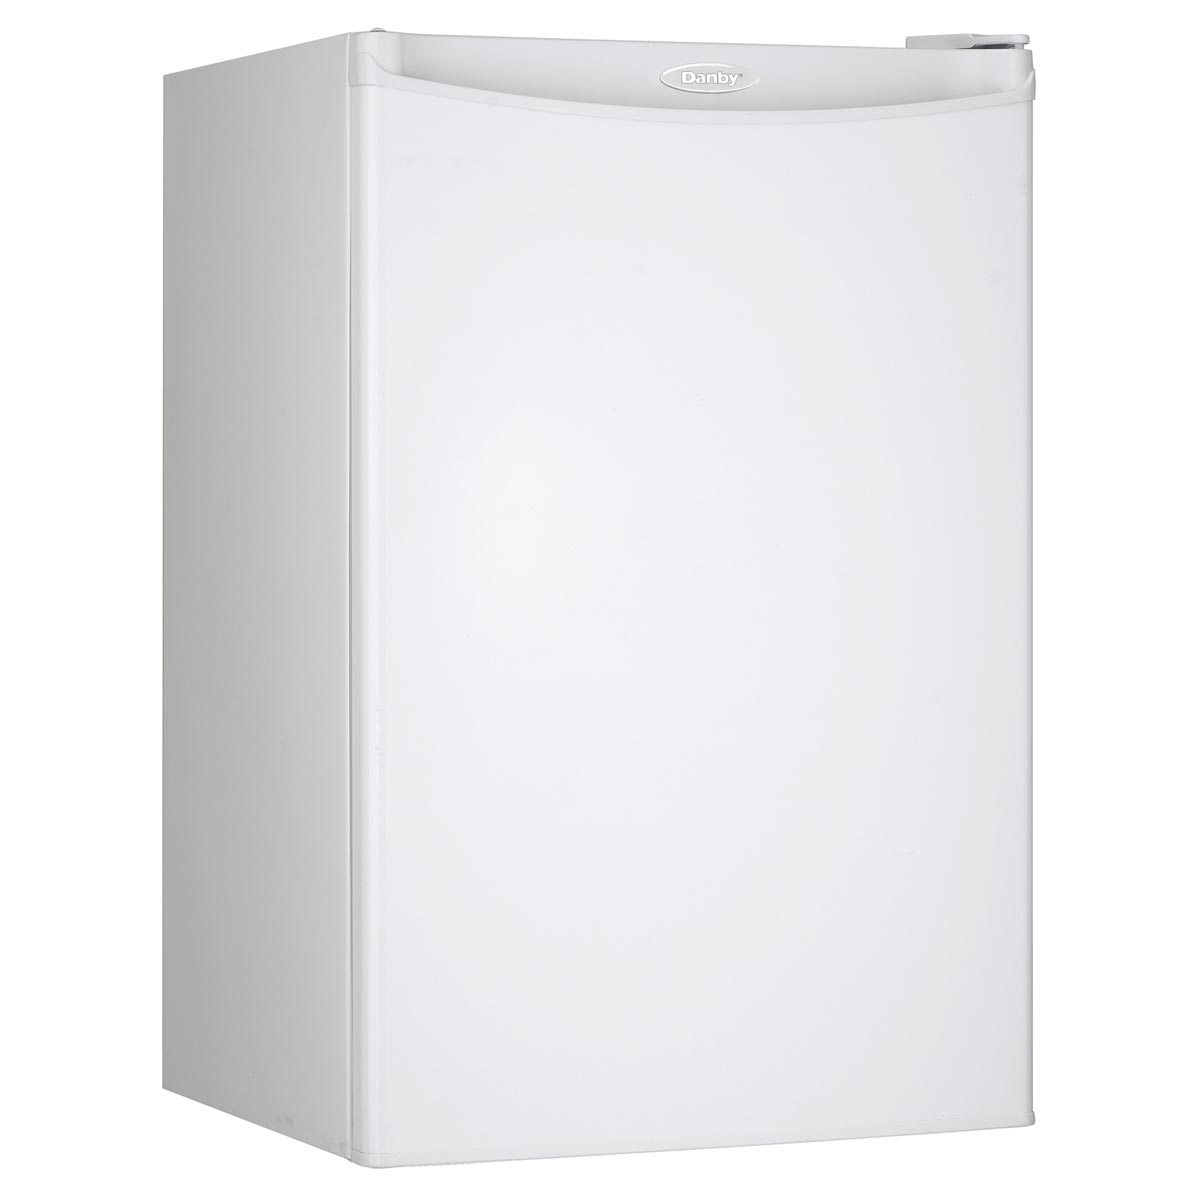 3.2 cu. ft. Manual Defrost Upright Freezer in White